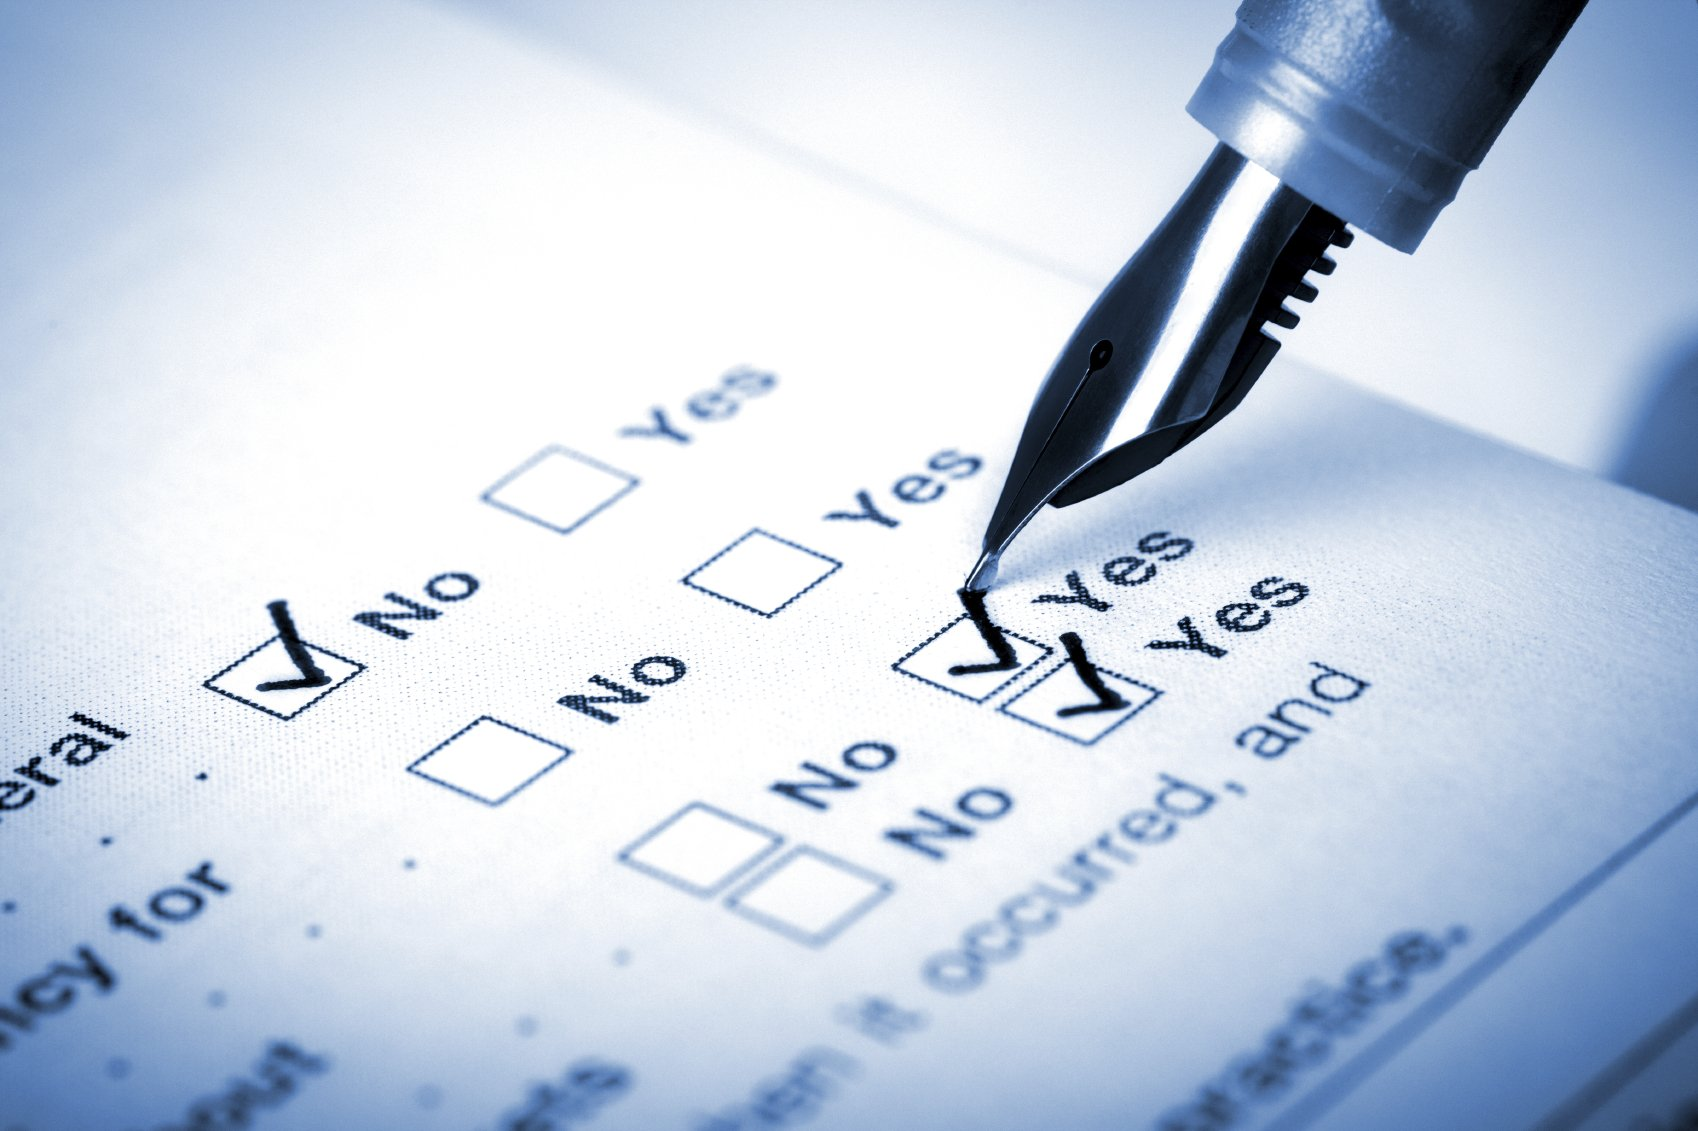 Top Tips For Applying For Jobs In Security